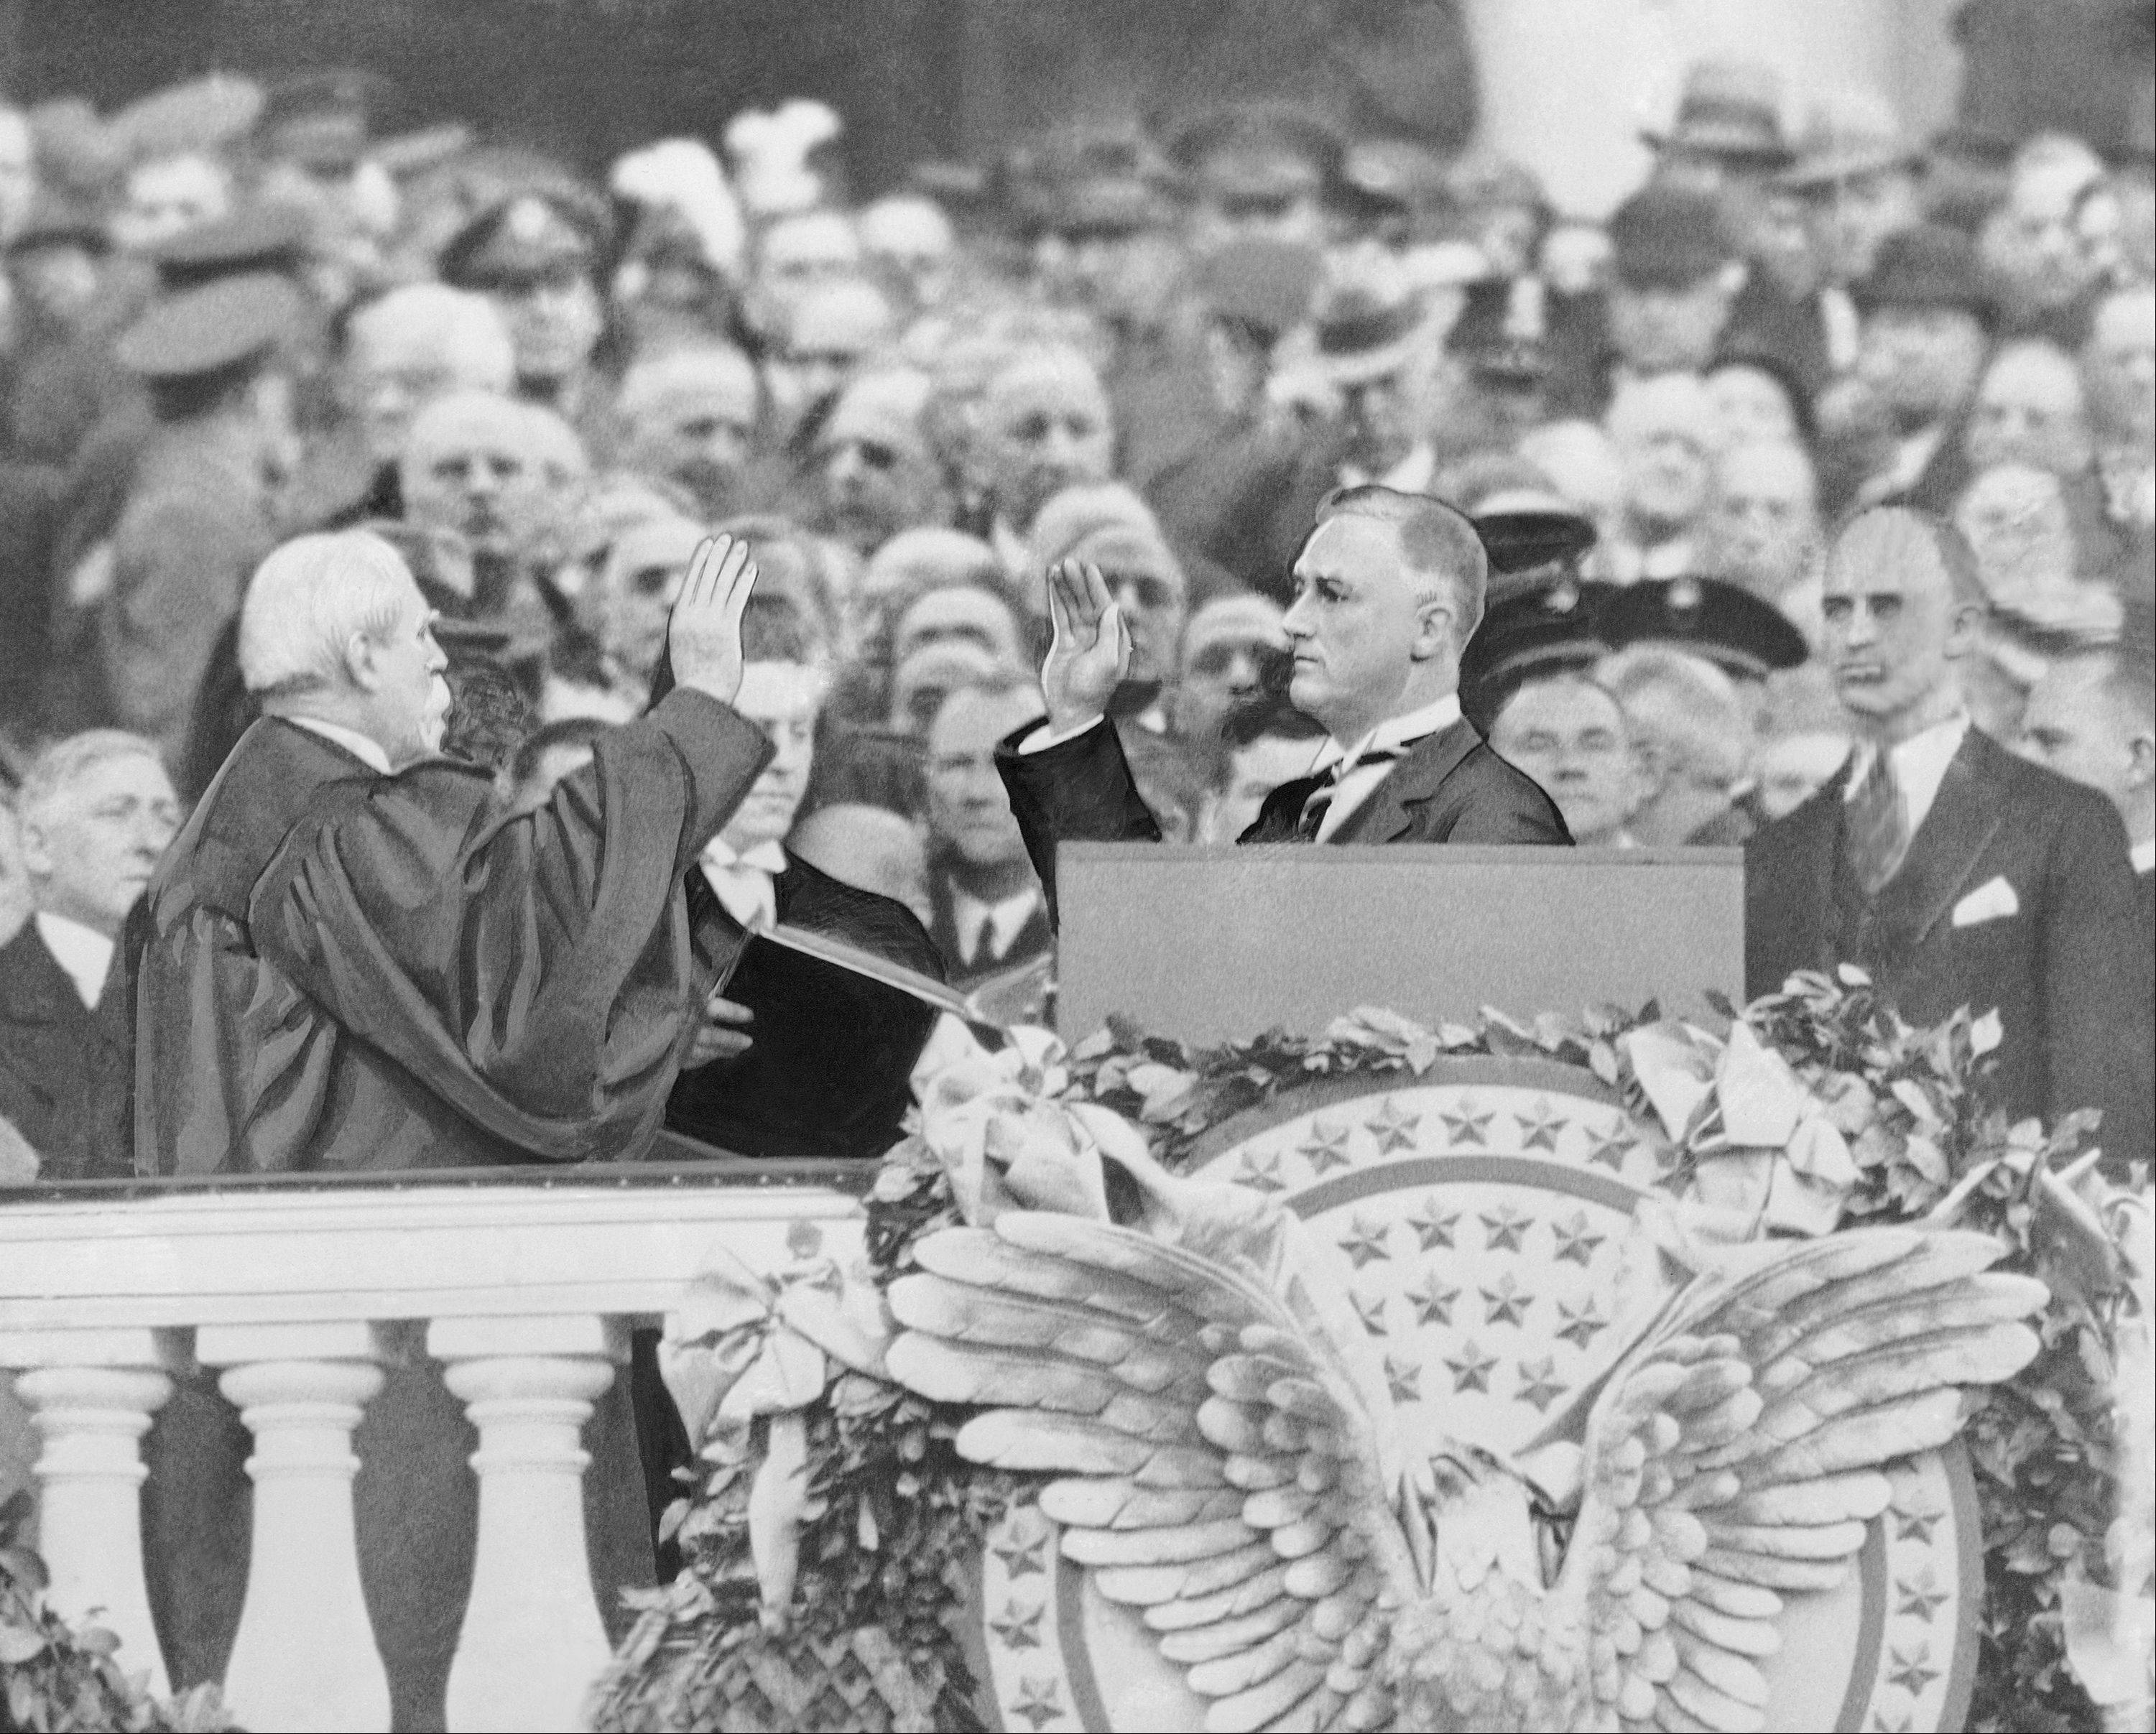 Franklin Delano Roosevelt takes the oath of office as the 32nd president of the United States from Chief Justice Charles Evans Hughes, March 4, 1933.